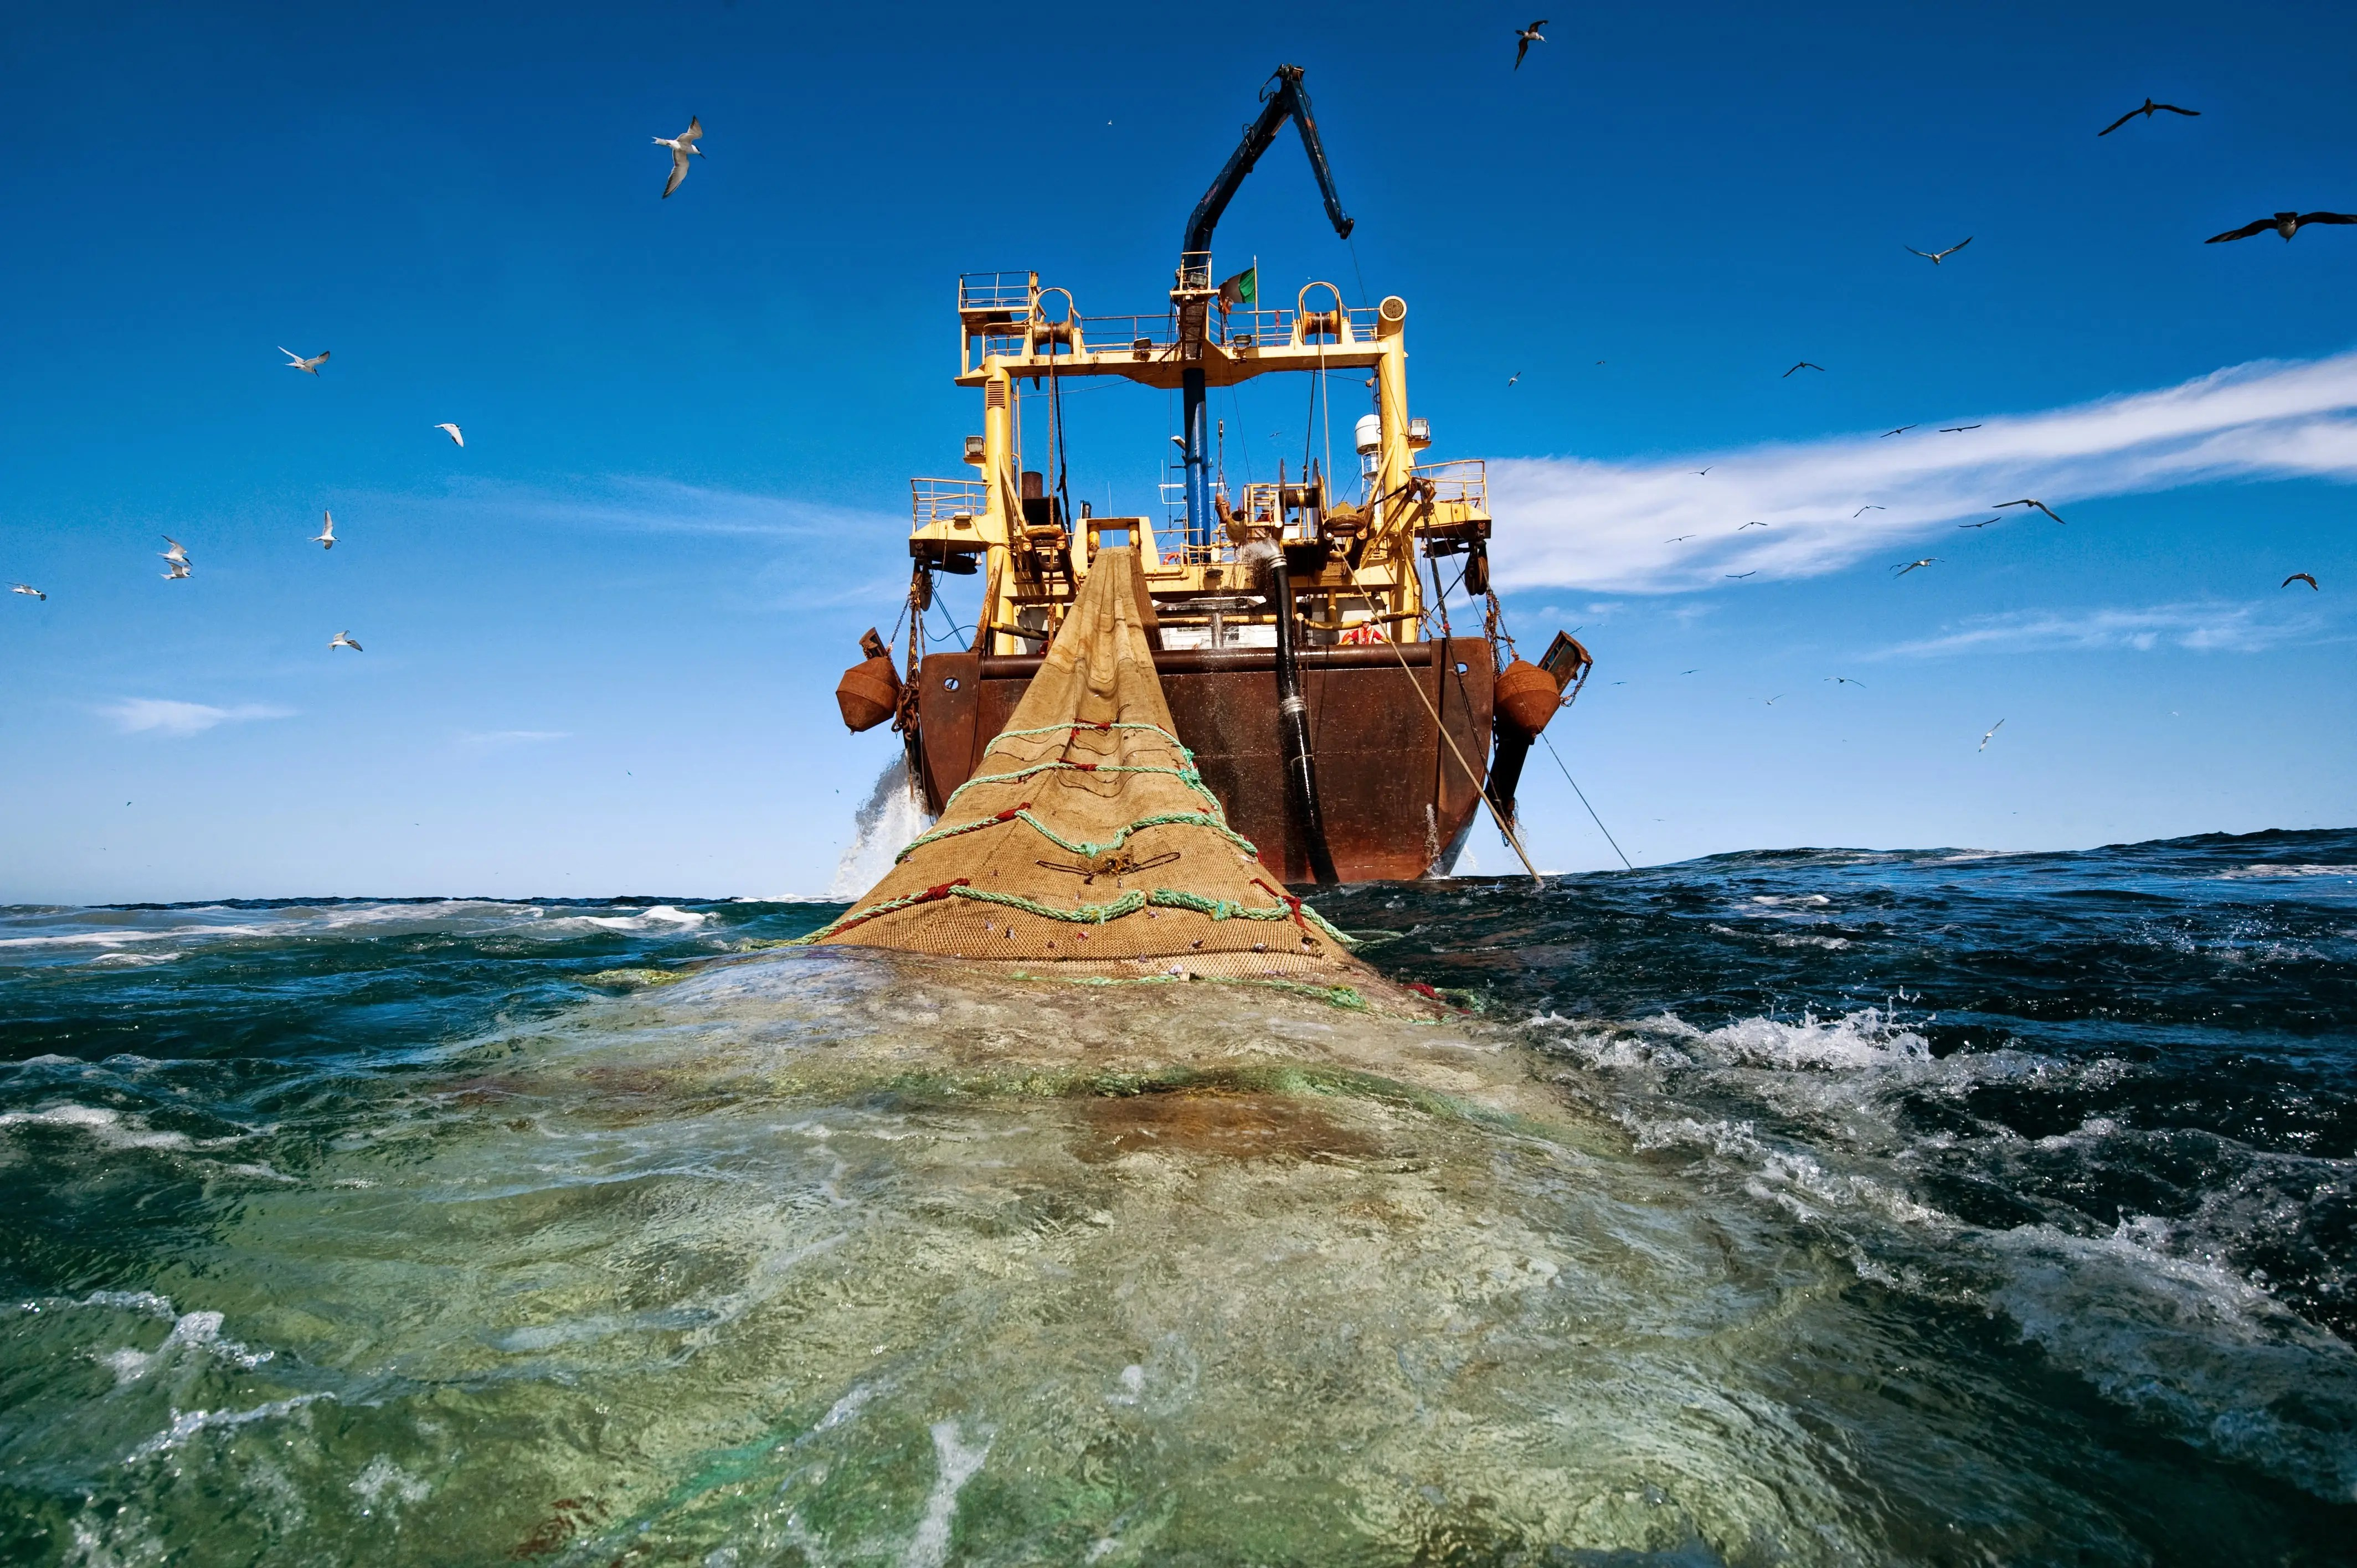 A 400-foot-long pelagic trawler pulls in a haul off the coast of Mauritania. The ever-growing demand for fish protein in the world diet, has created record catches in recent years.